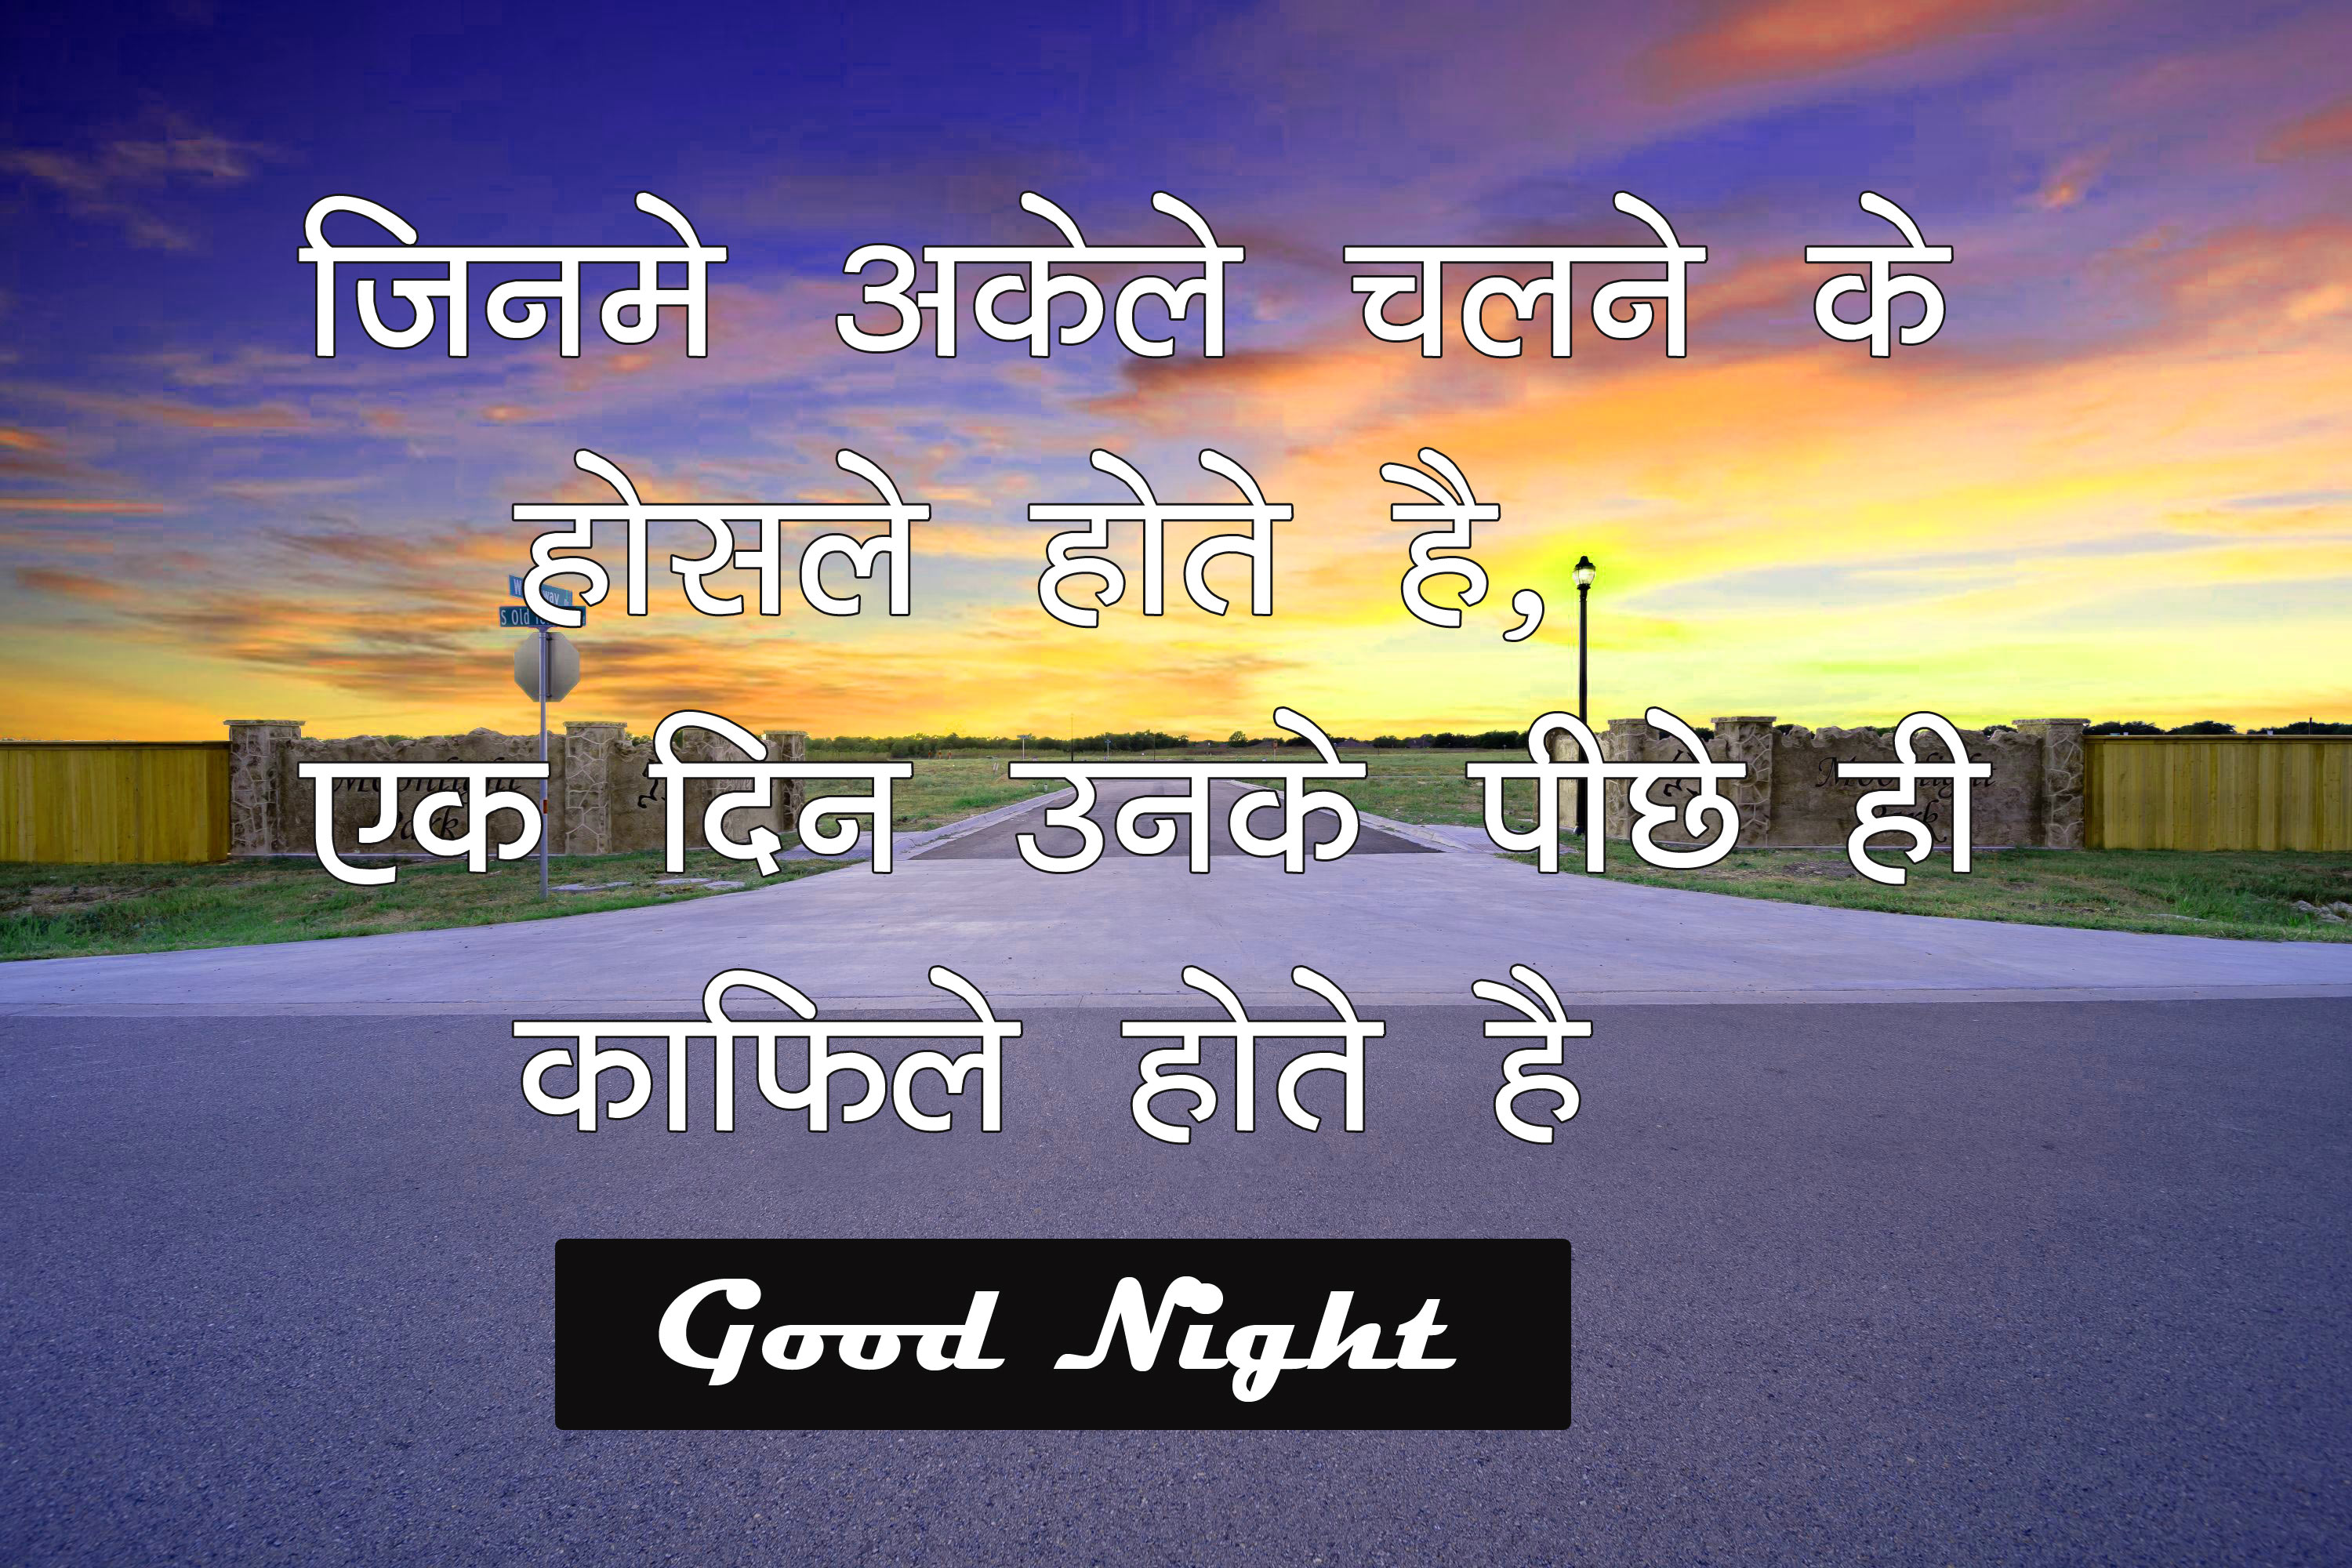 Hindi Motivational Quotes Good Night  Images Pics Download